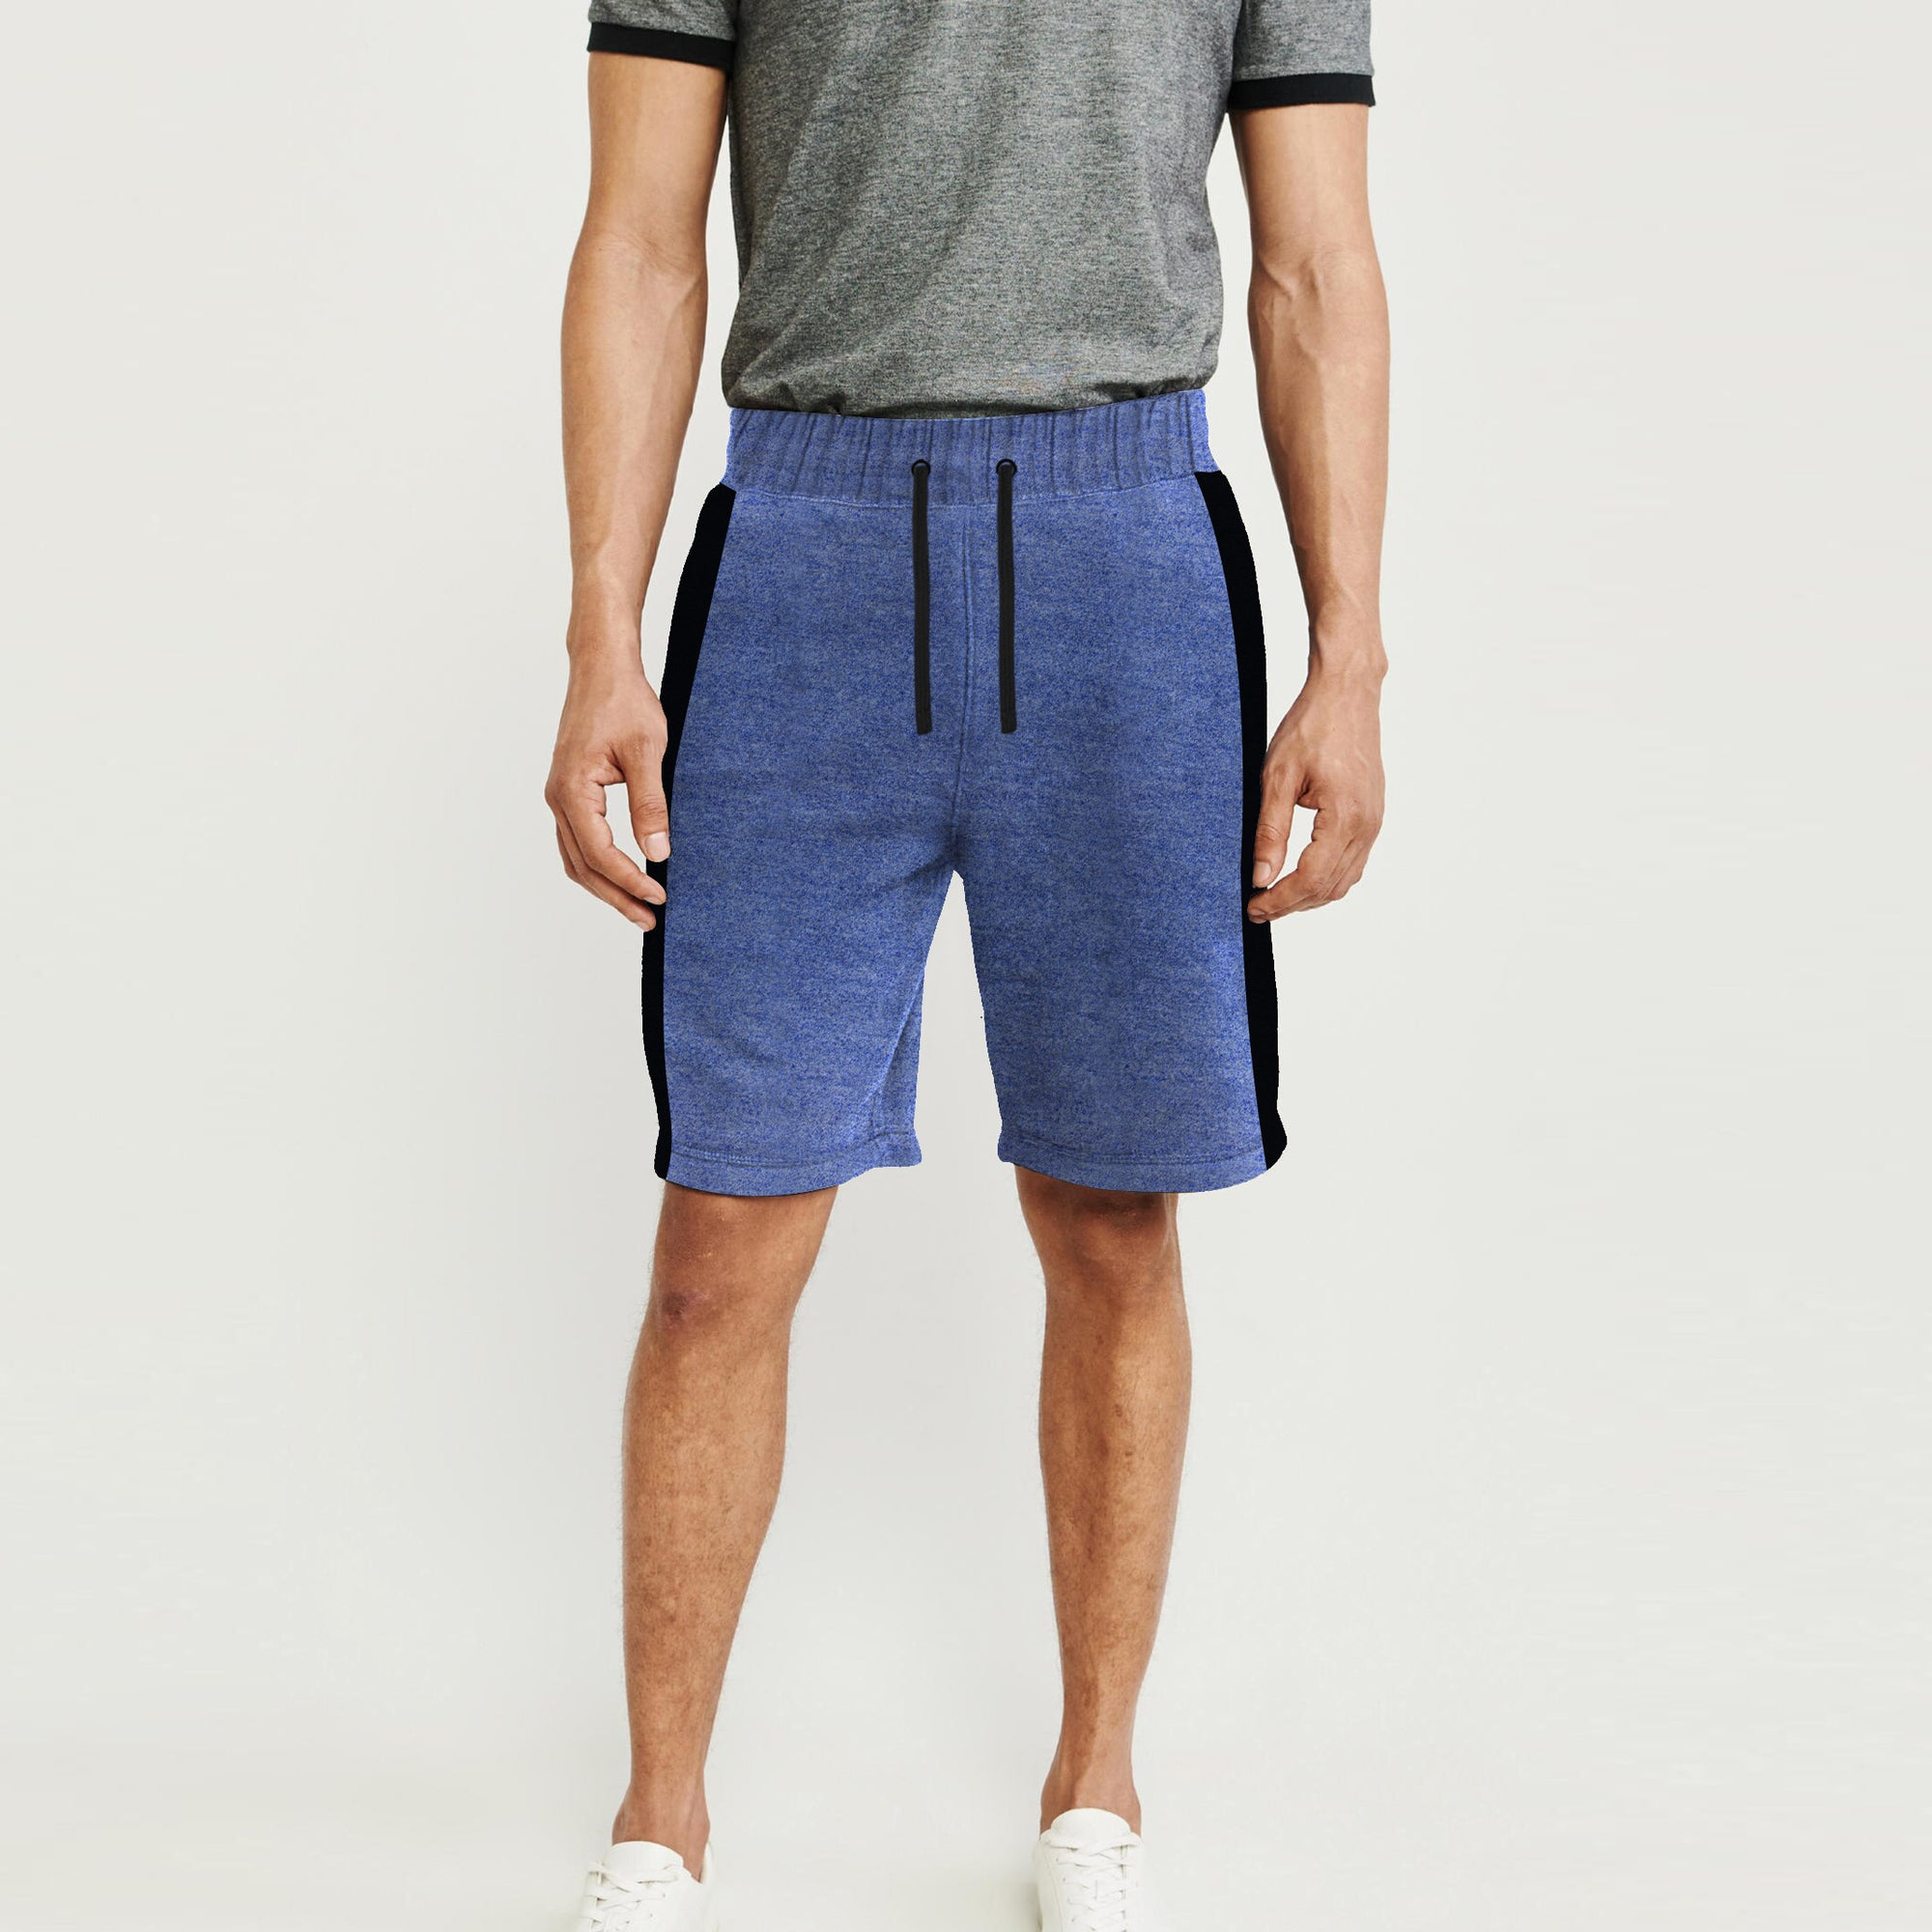 Next Summer Terry Jersey Short For Men-Blue Melange & Black Stripe-BE8827